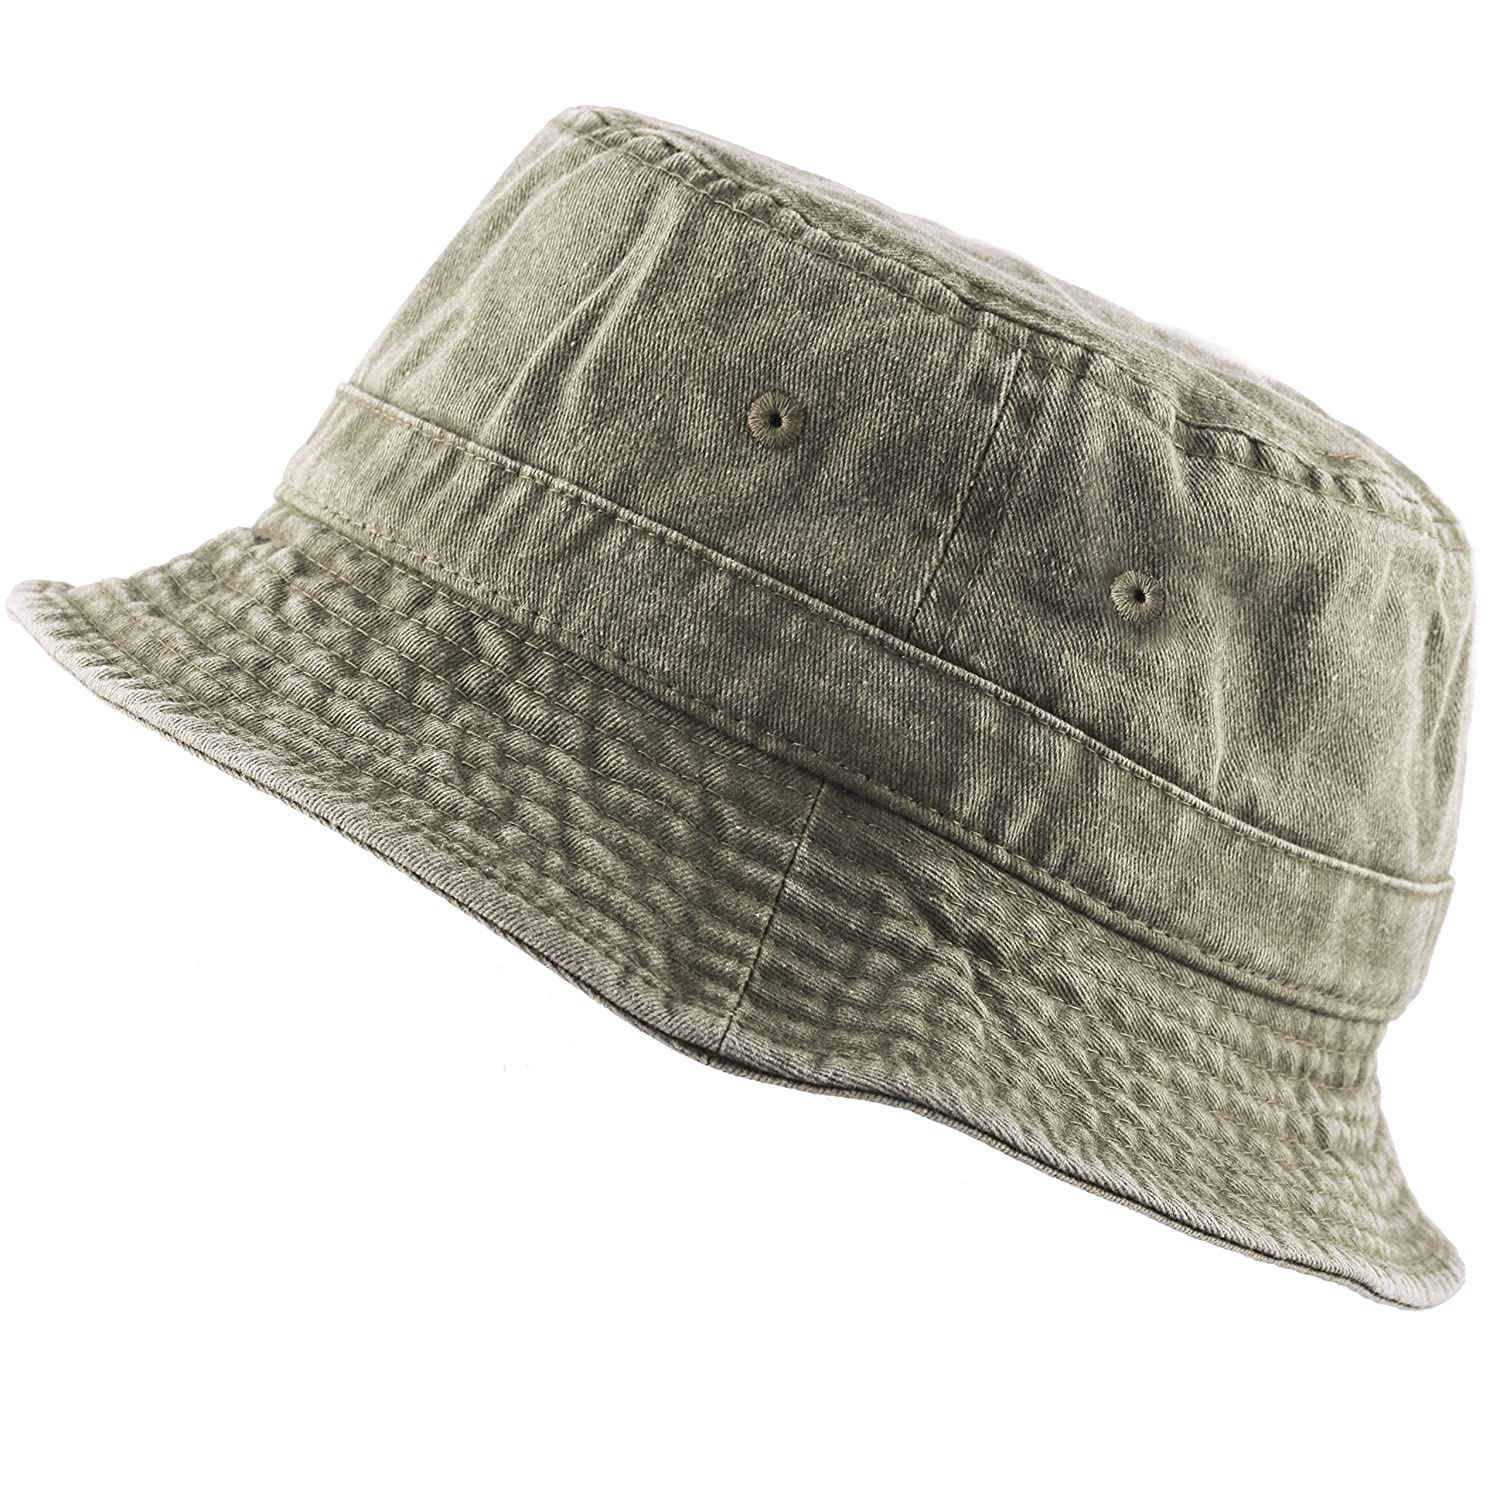 THE HAT DEPOT 300N 100% Cotton Packable Pigment Washed Cotton Bucket Hat